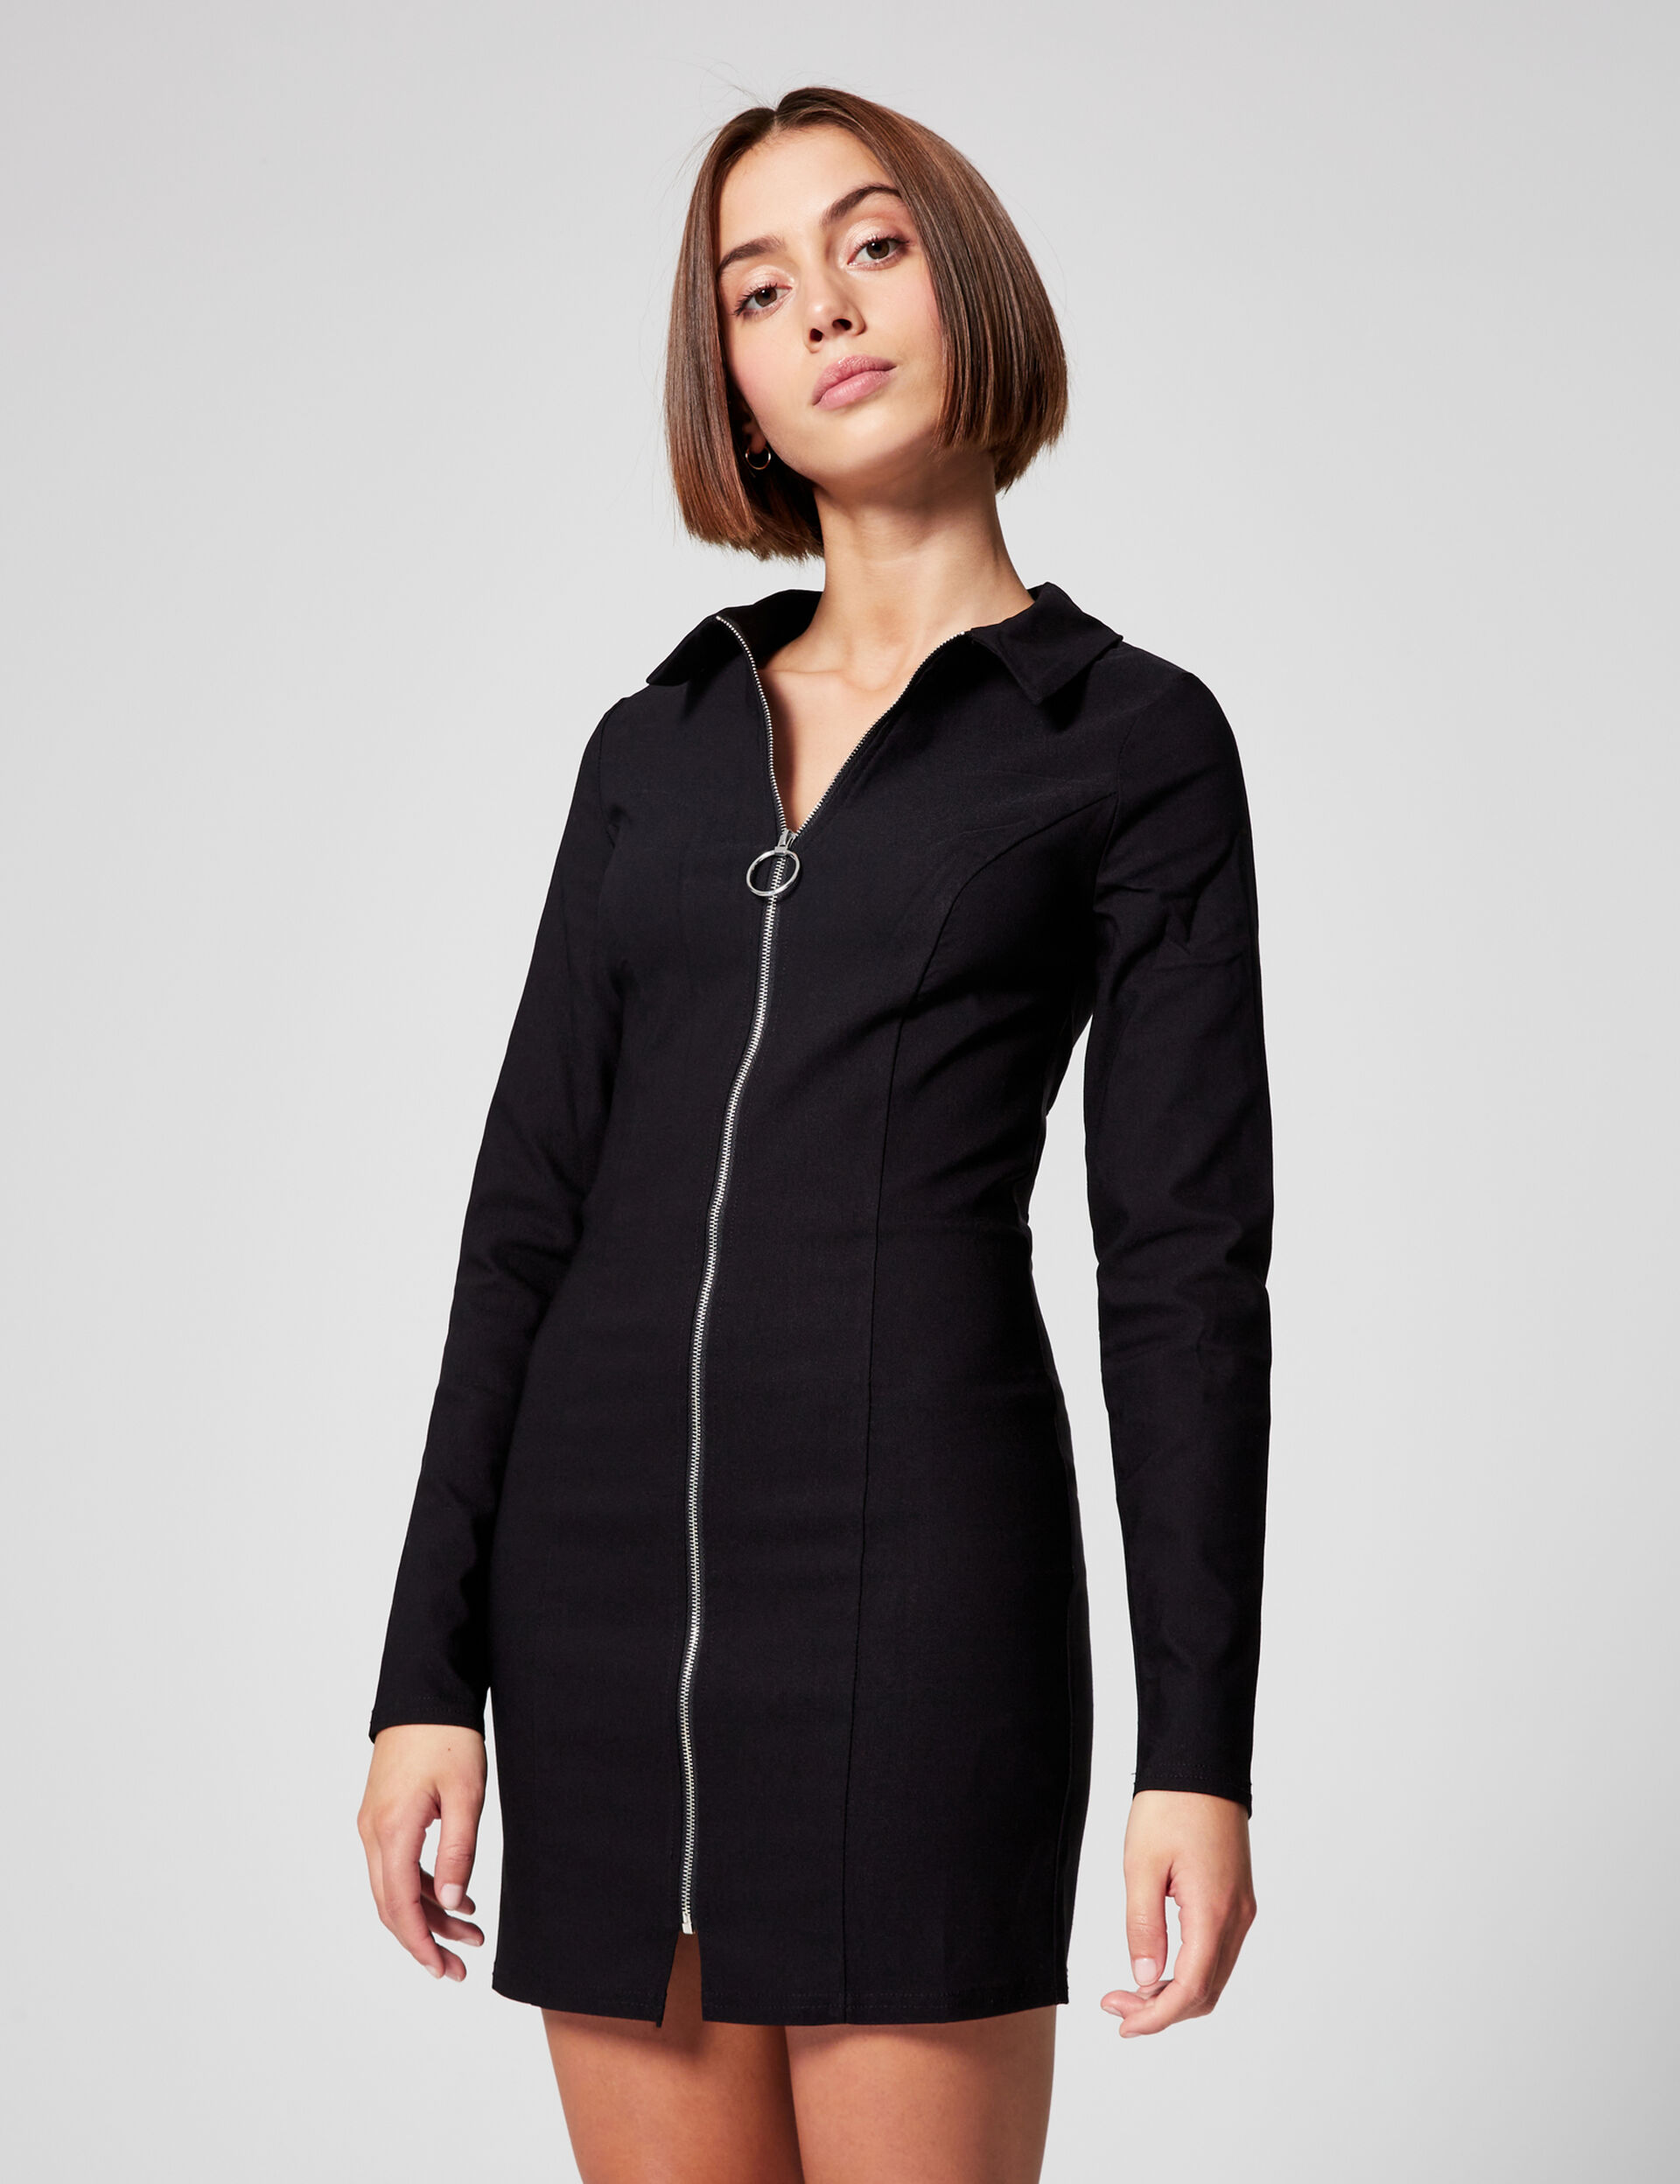 Fitted zipped dress